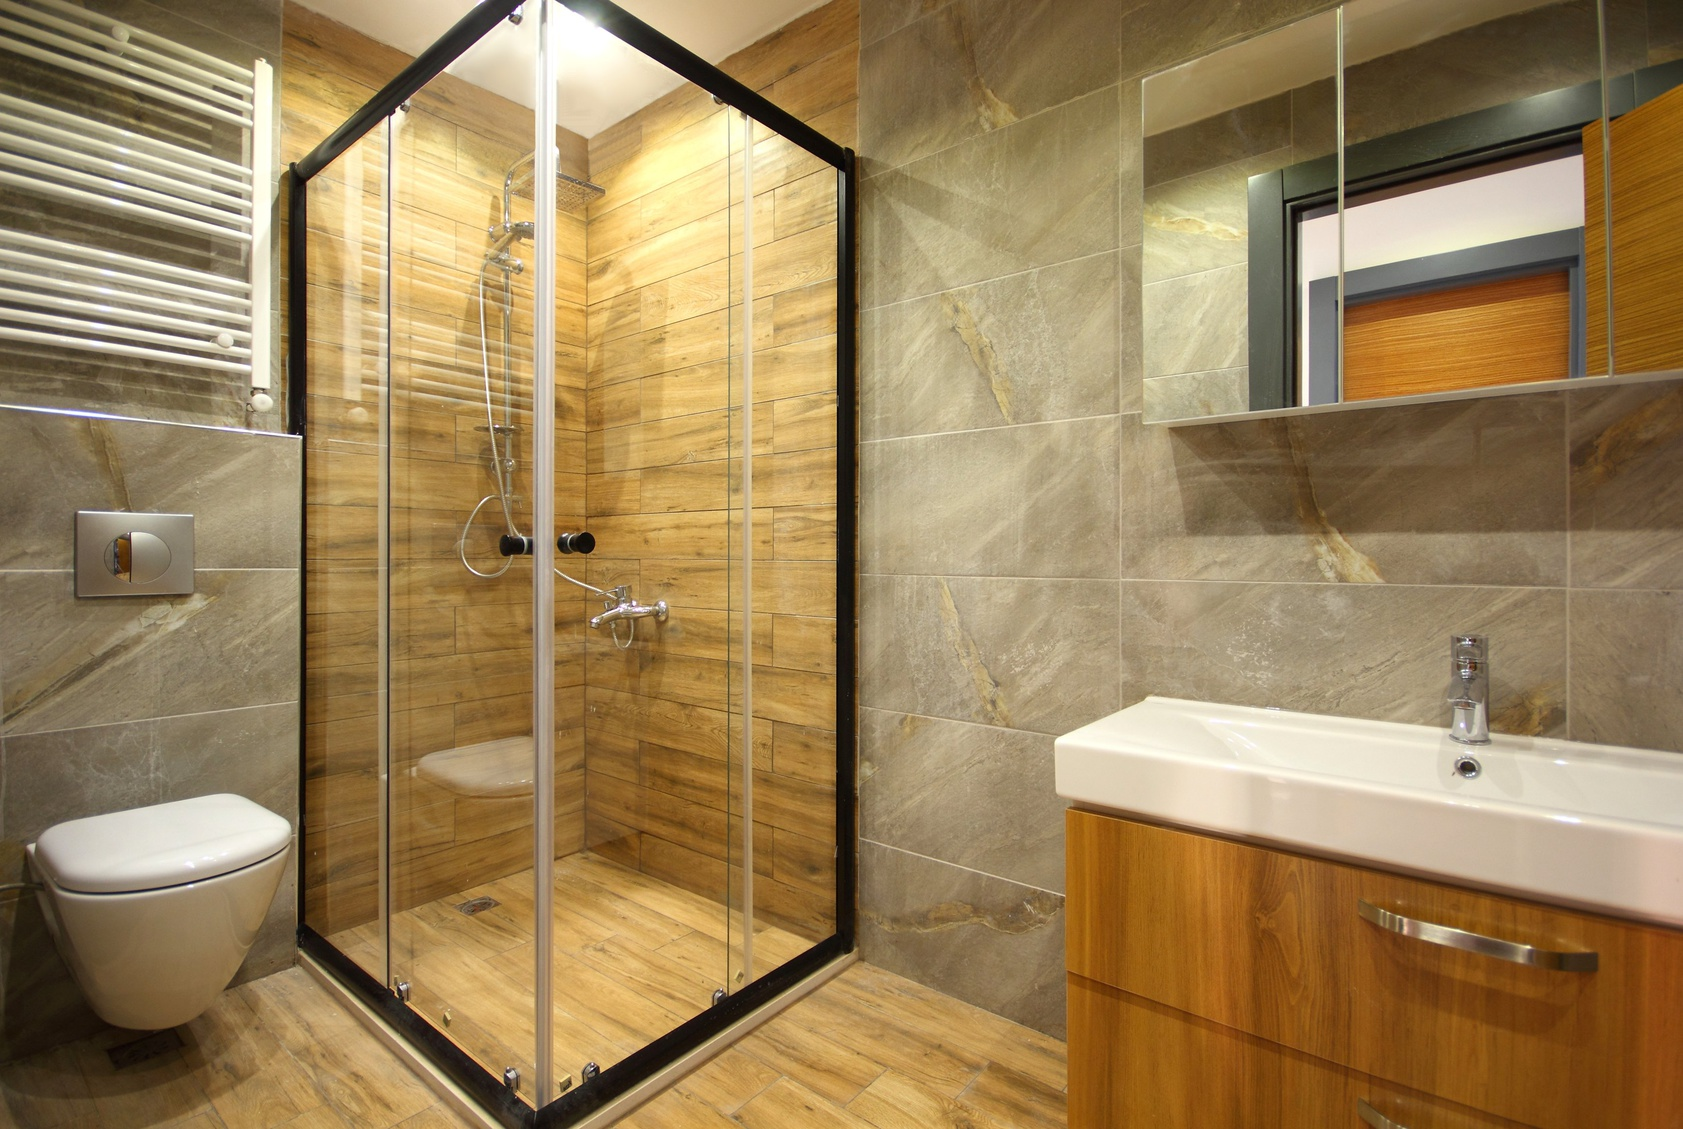 4 Modern Designs For Bathroom Remodeling